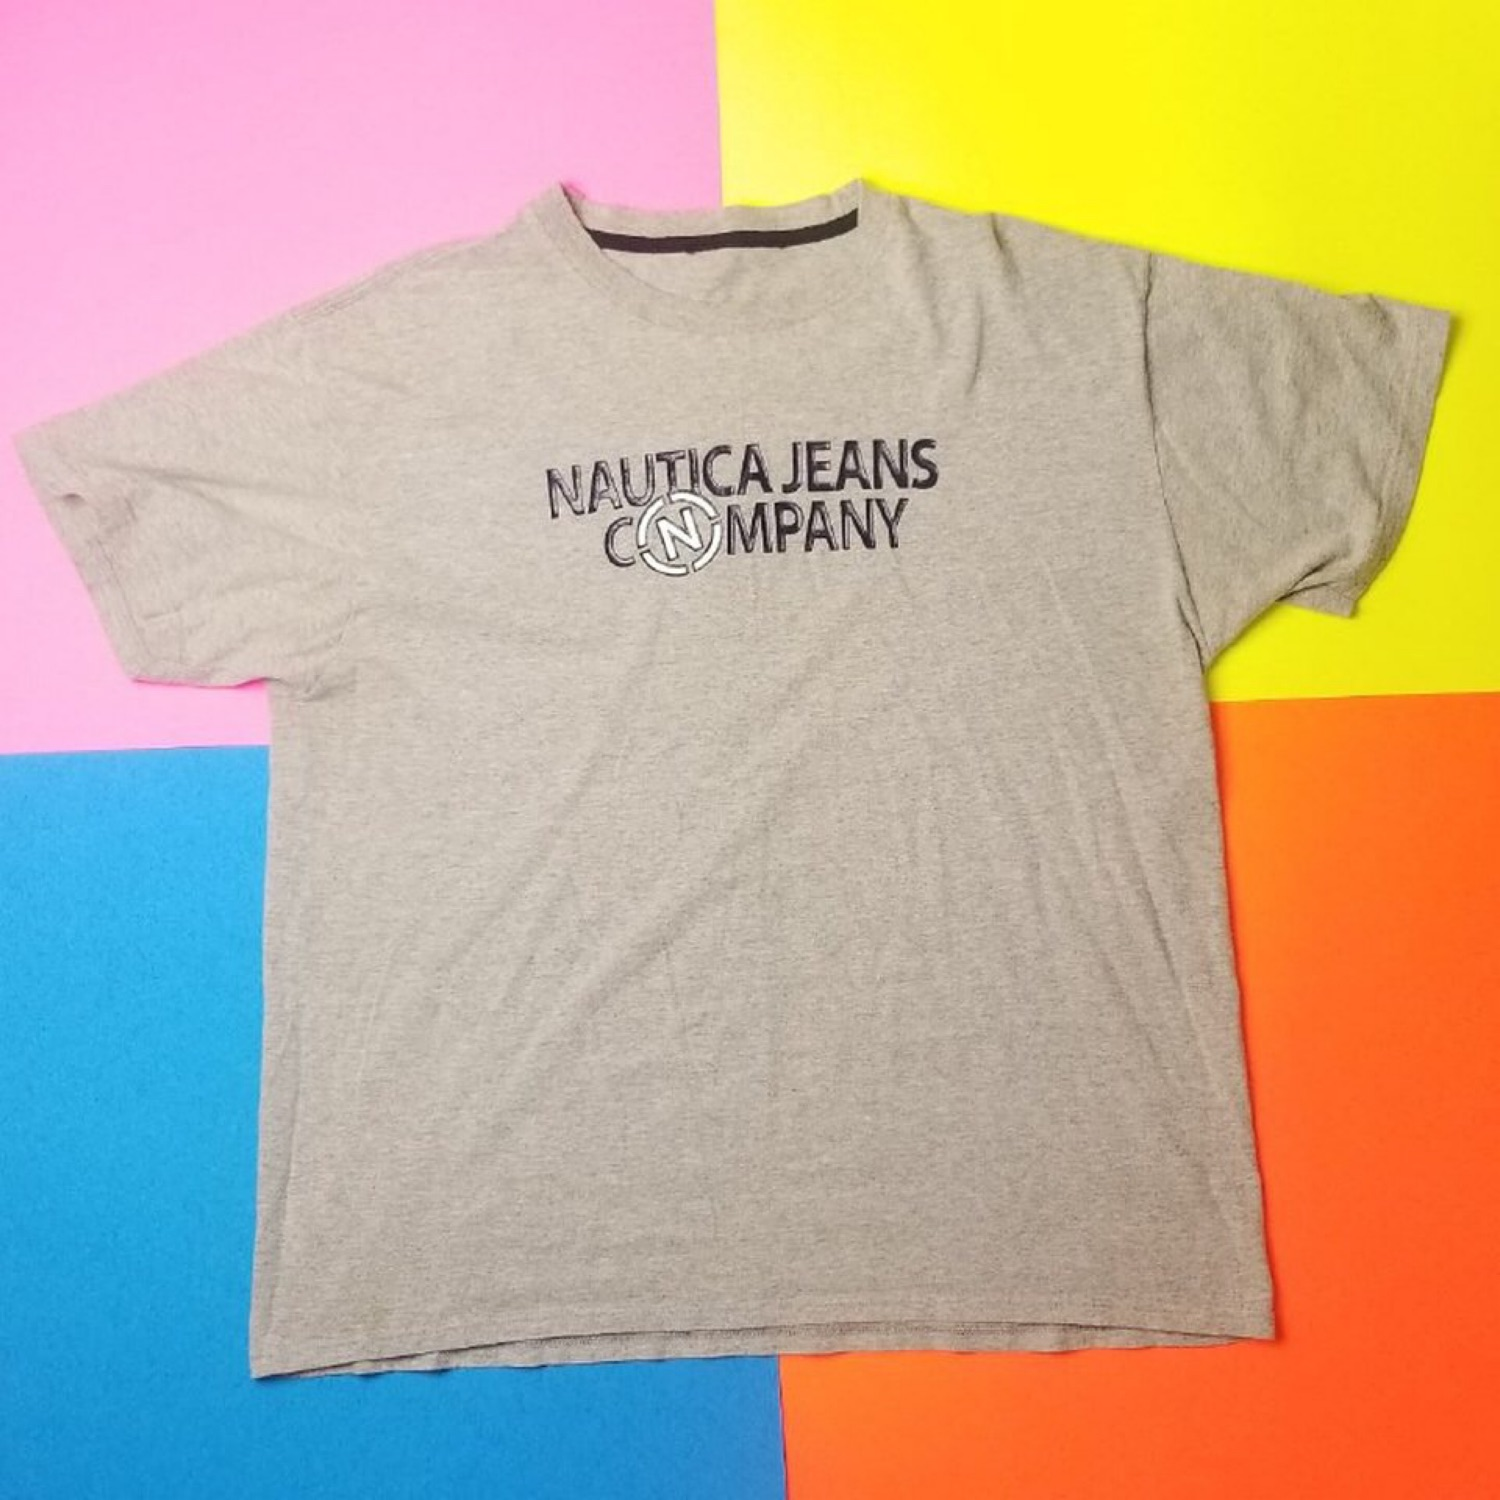 Vintage Nautica Jeans Company Spellout Logo Tee